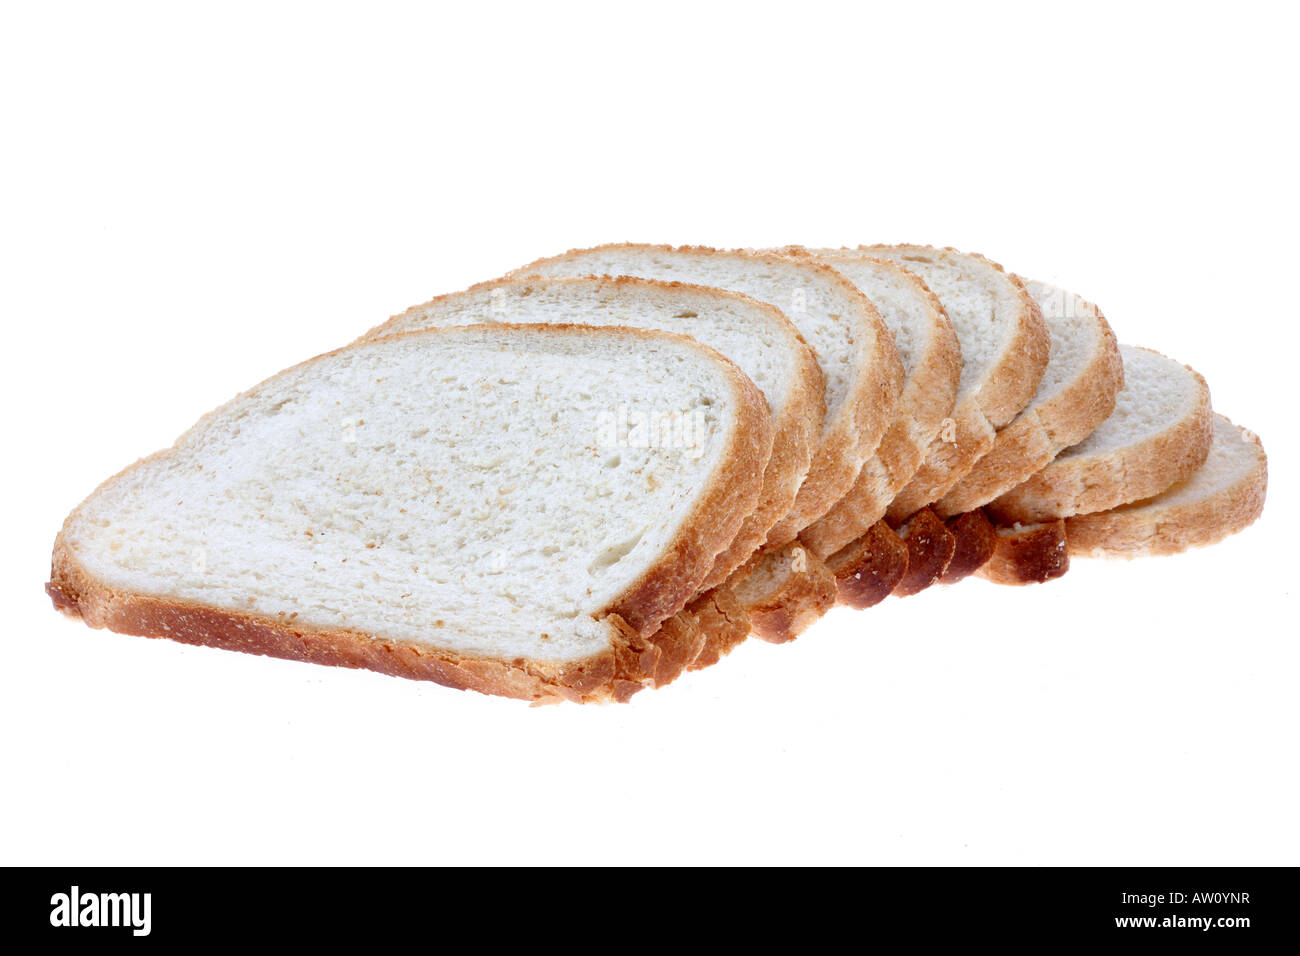 Bloomer Bread - Stock Image